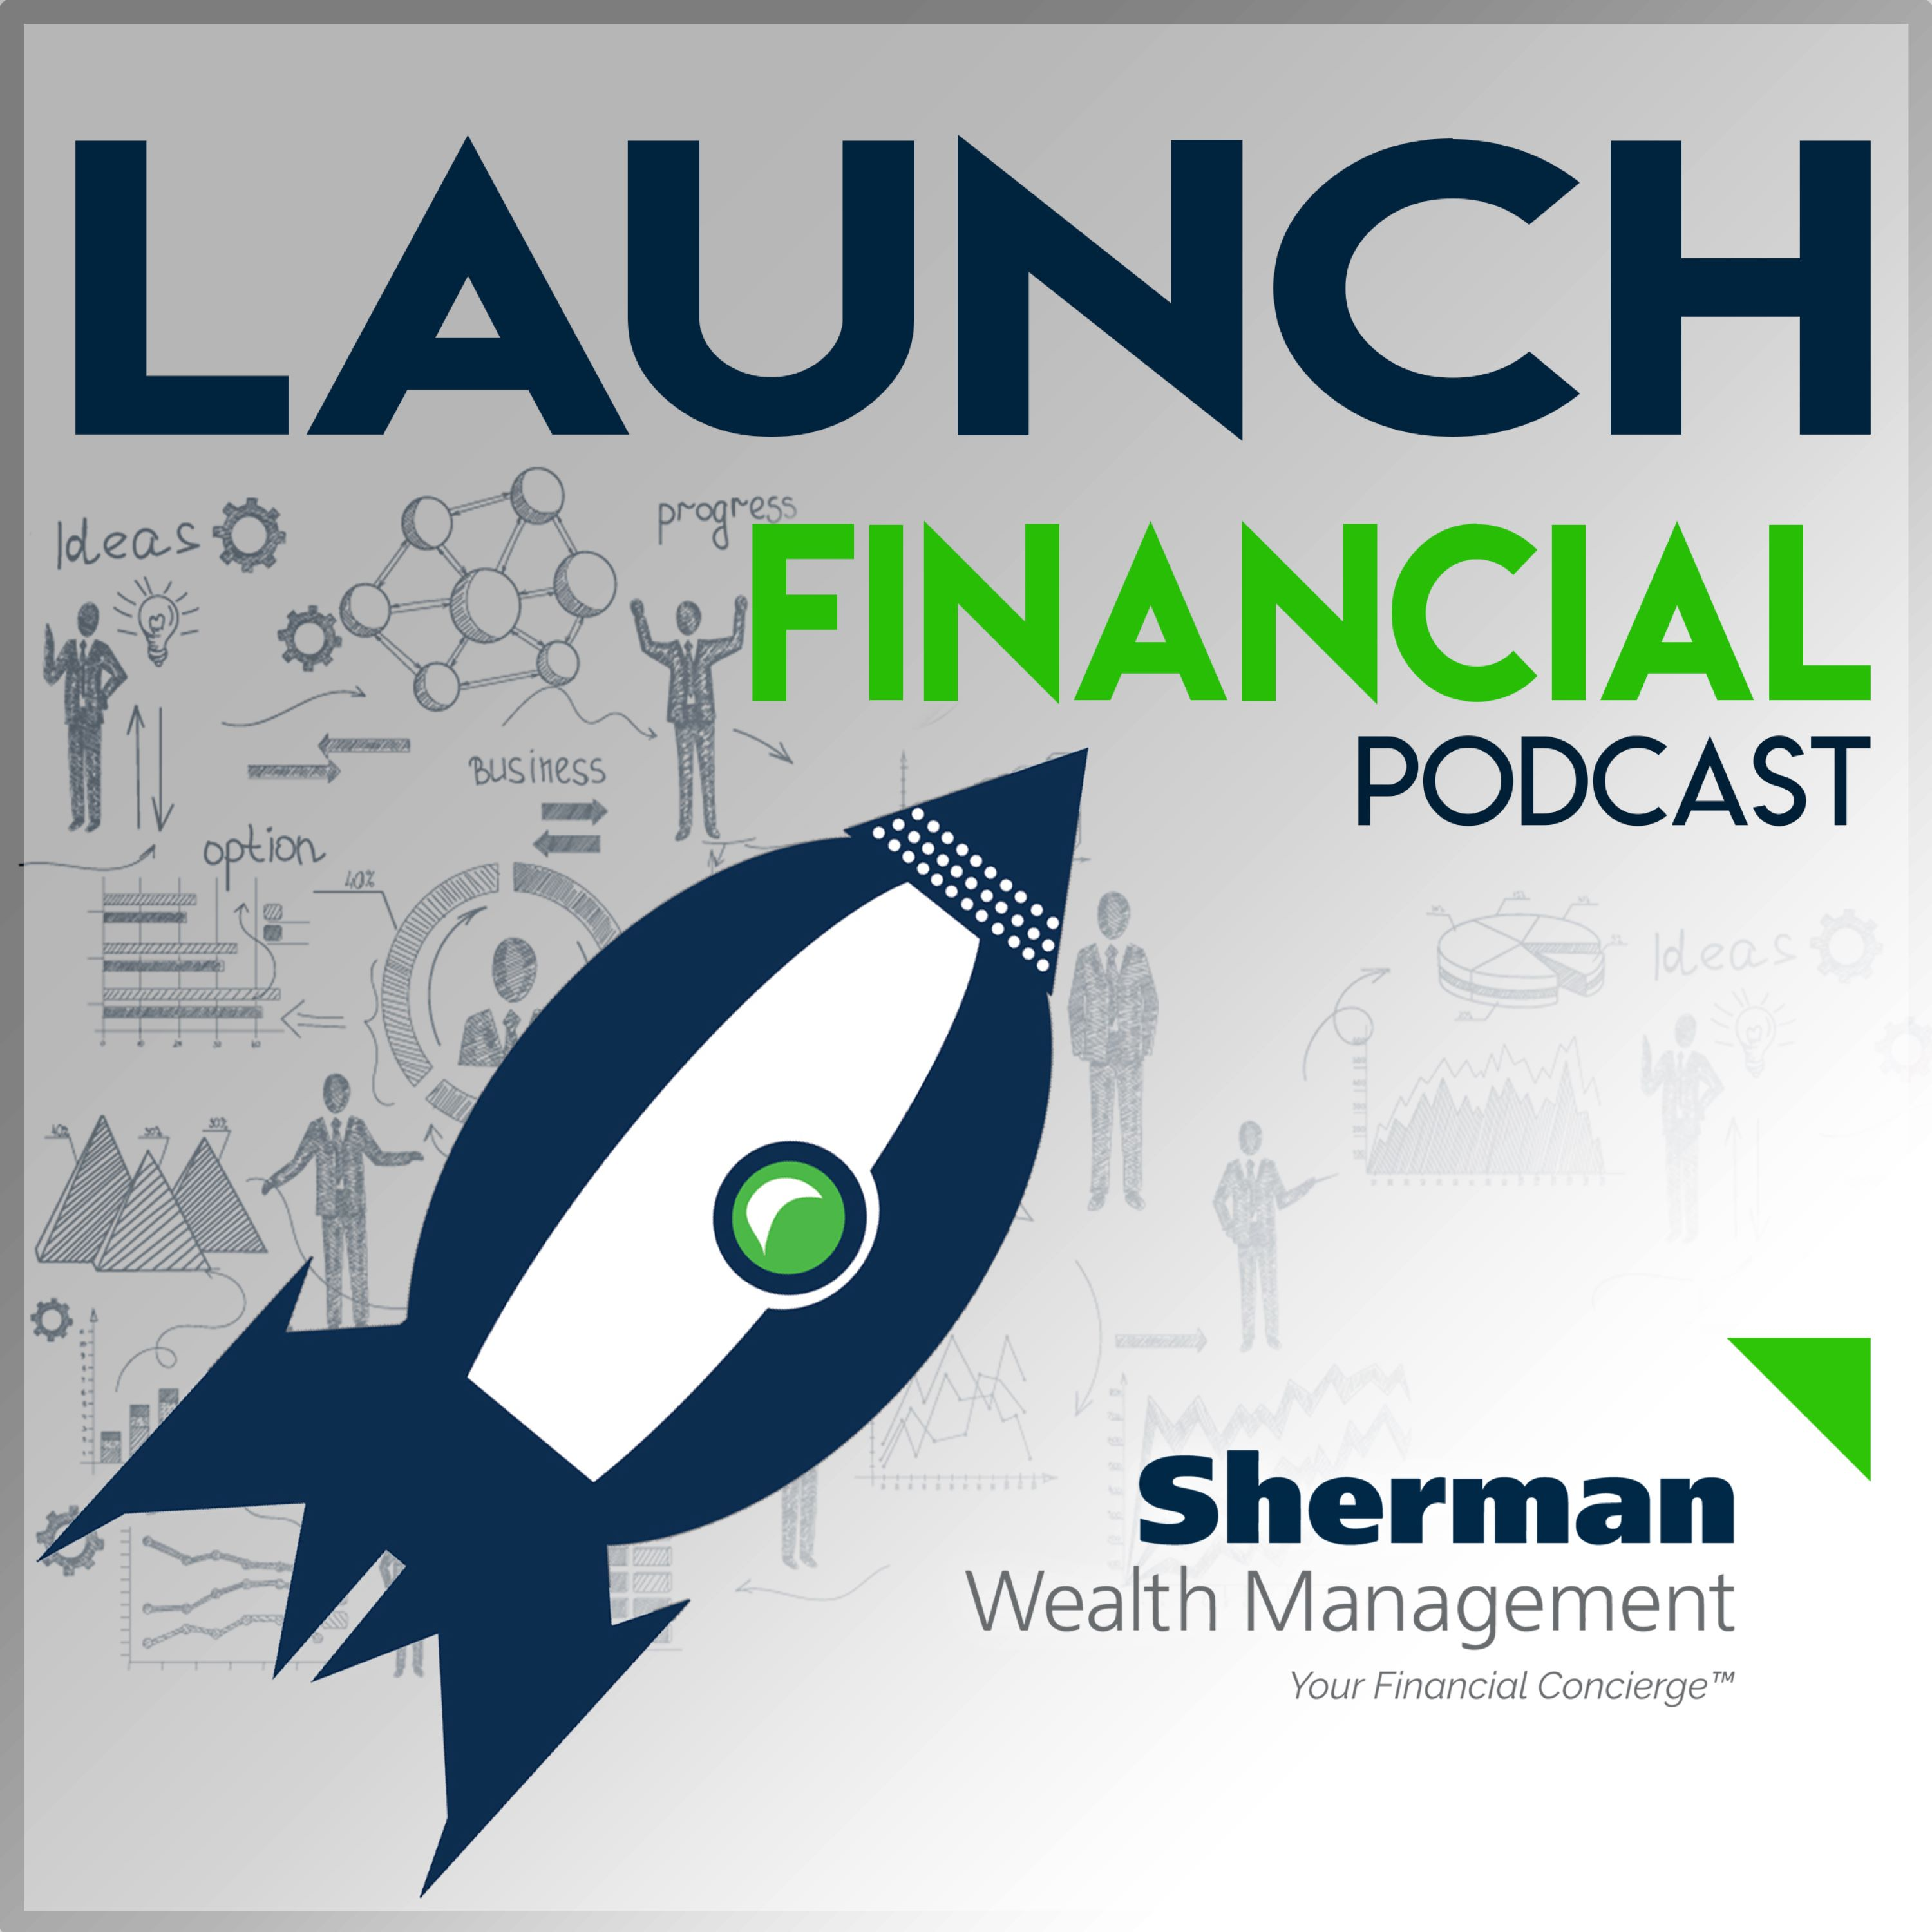 Launch Financial - Stimulus Bill Podcast show art